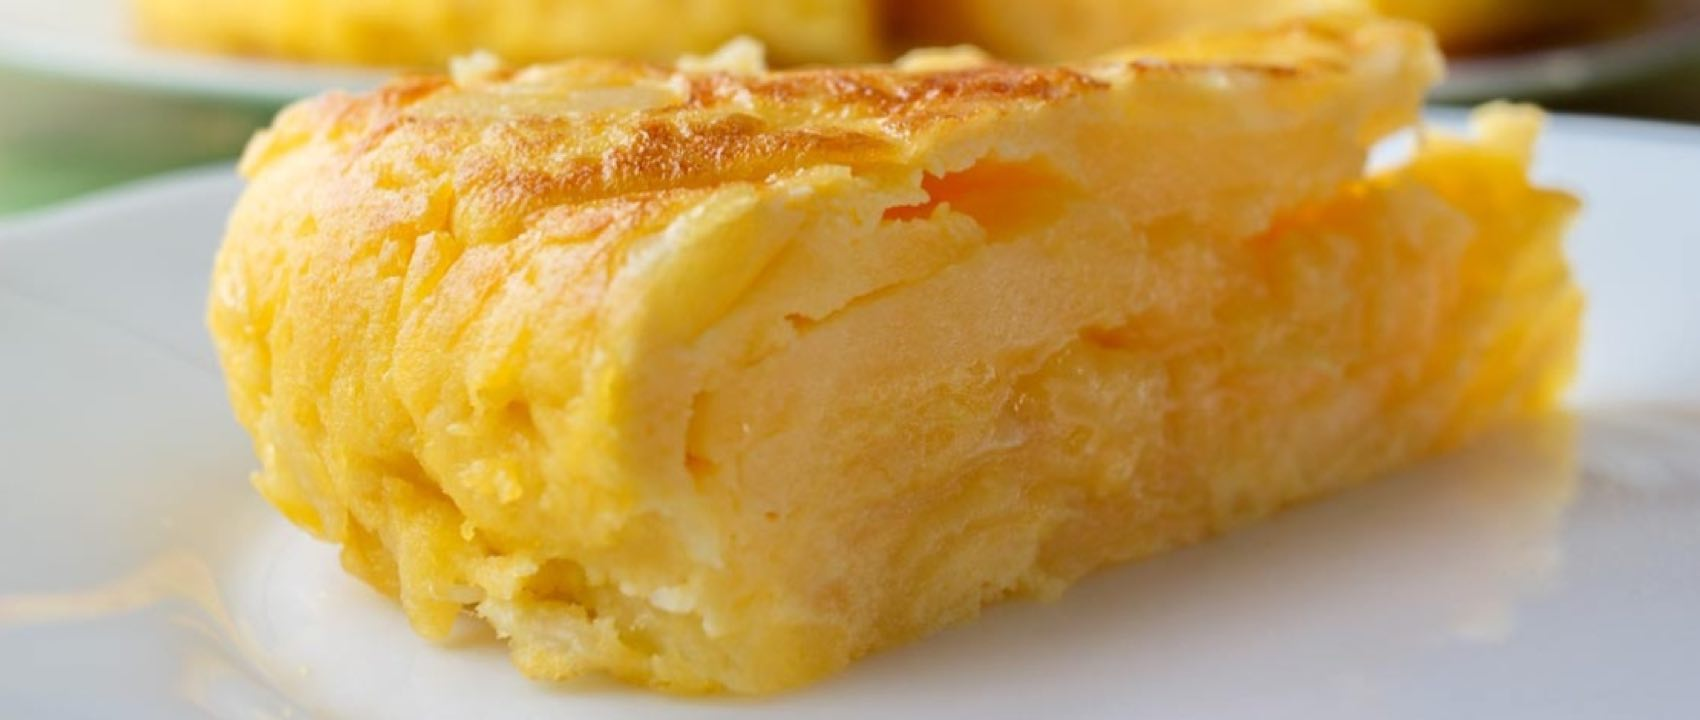 Tortilla is the name of a Spanish omelette